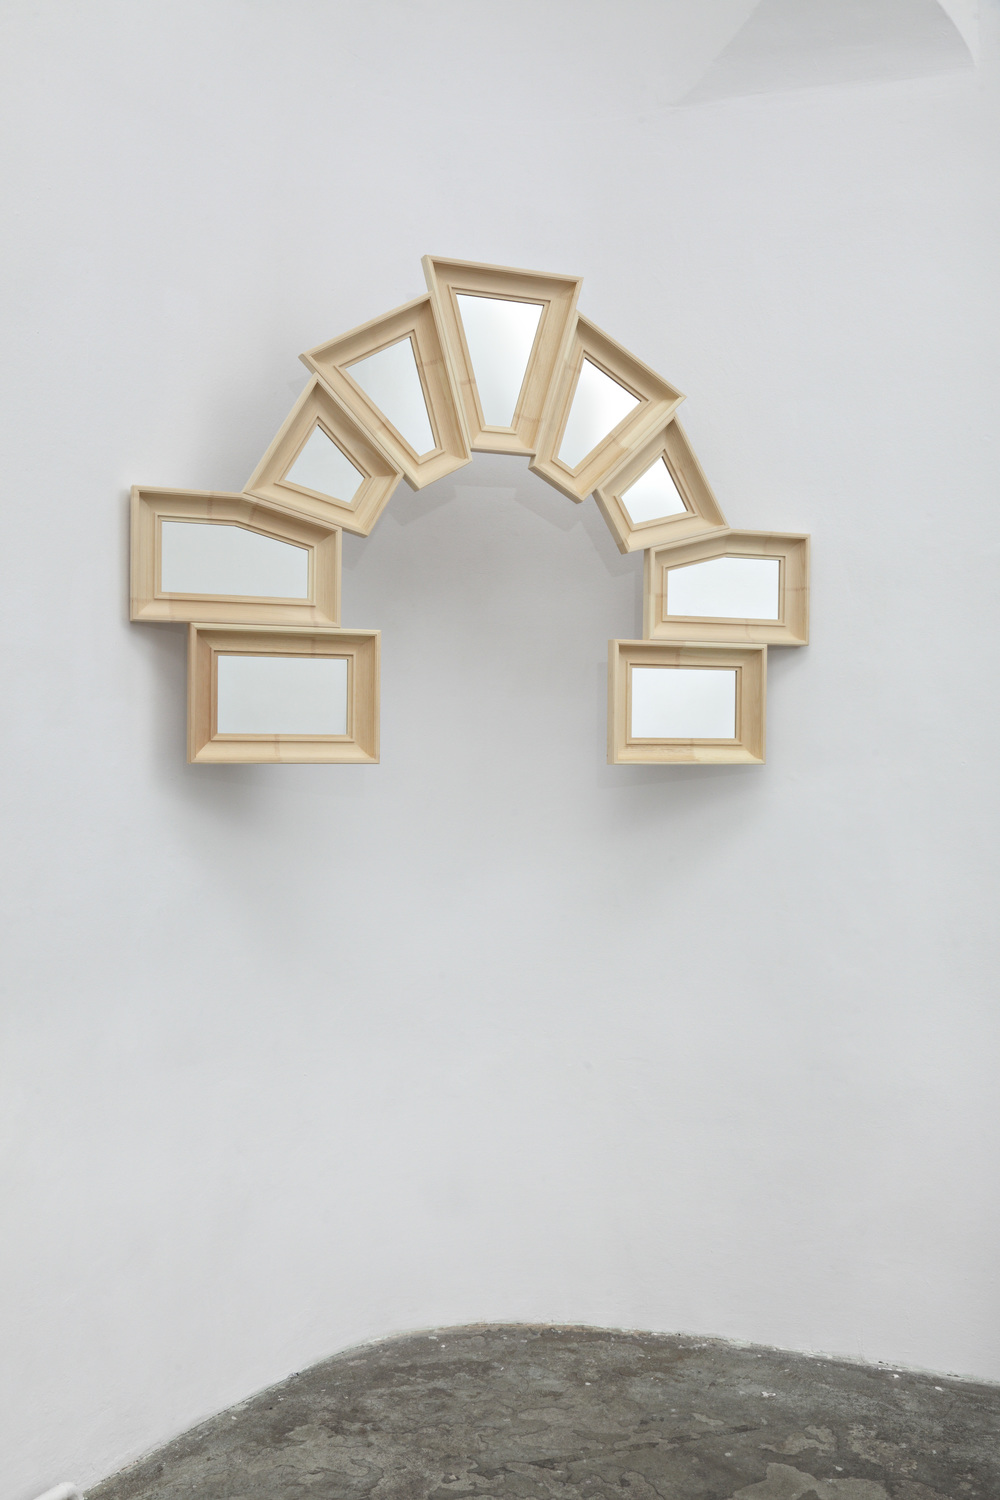 Robert & Trix Haussmann Lehrstück 1987/2014 Wood and acrylic mirror 177 x 122.5 x 6cm/ 69.7 x 48.2 x 2.4in